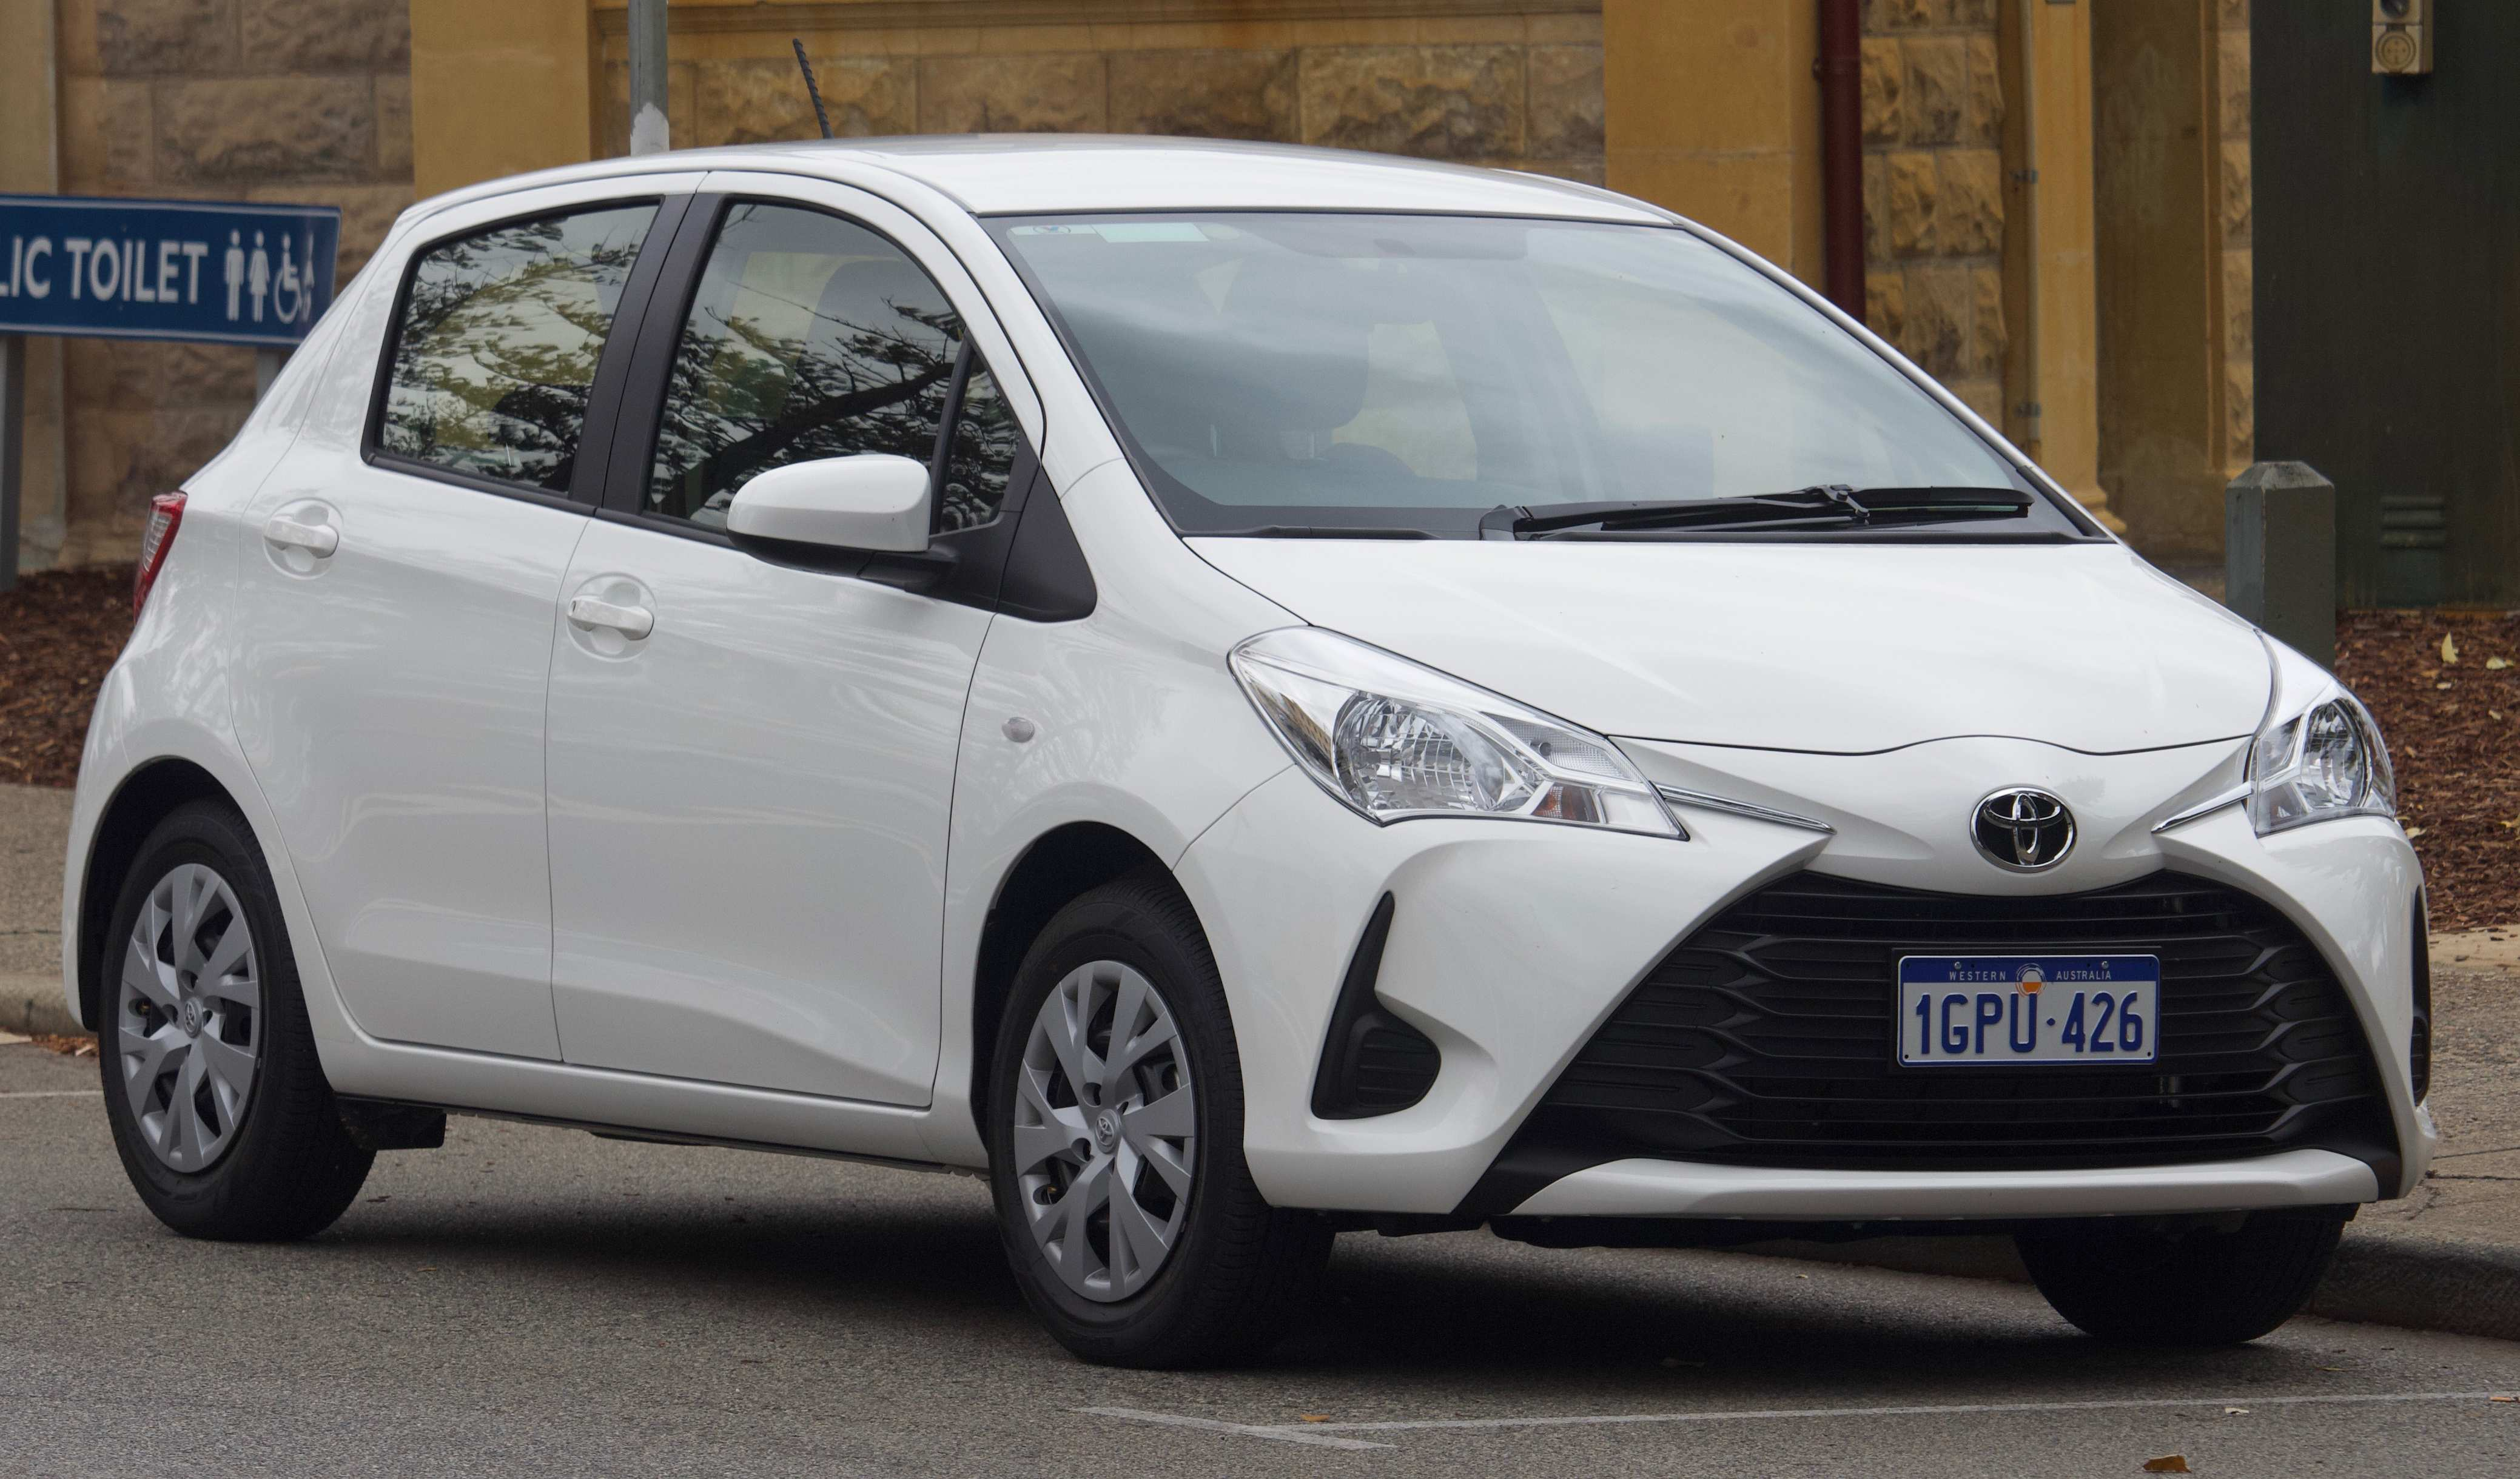 21 New Toyota Yaris 2020 Price Price Design And Review